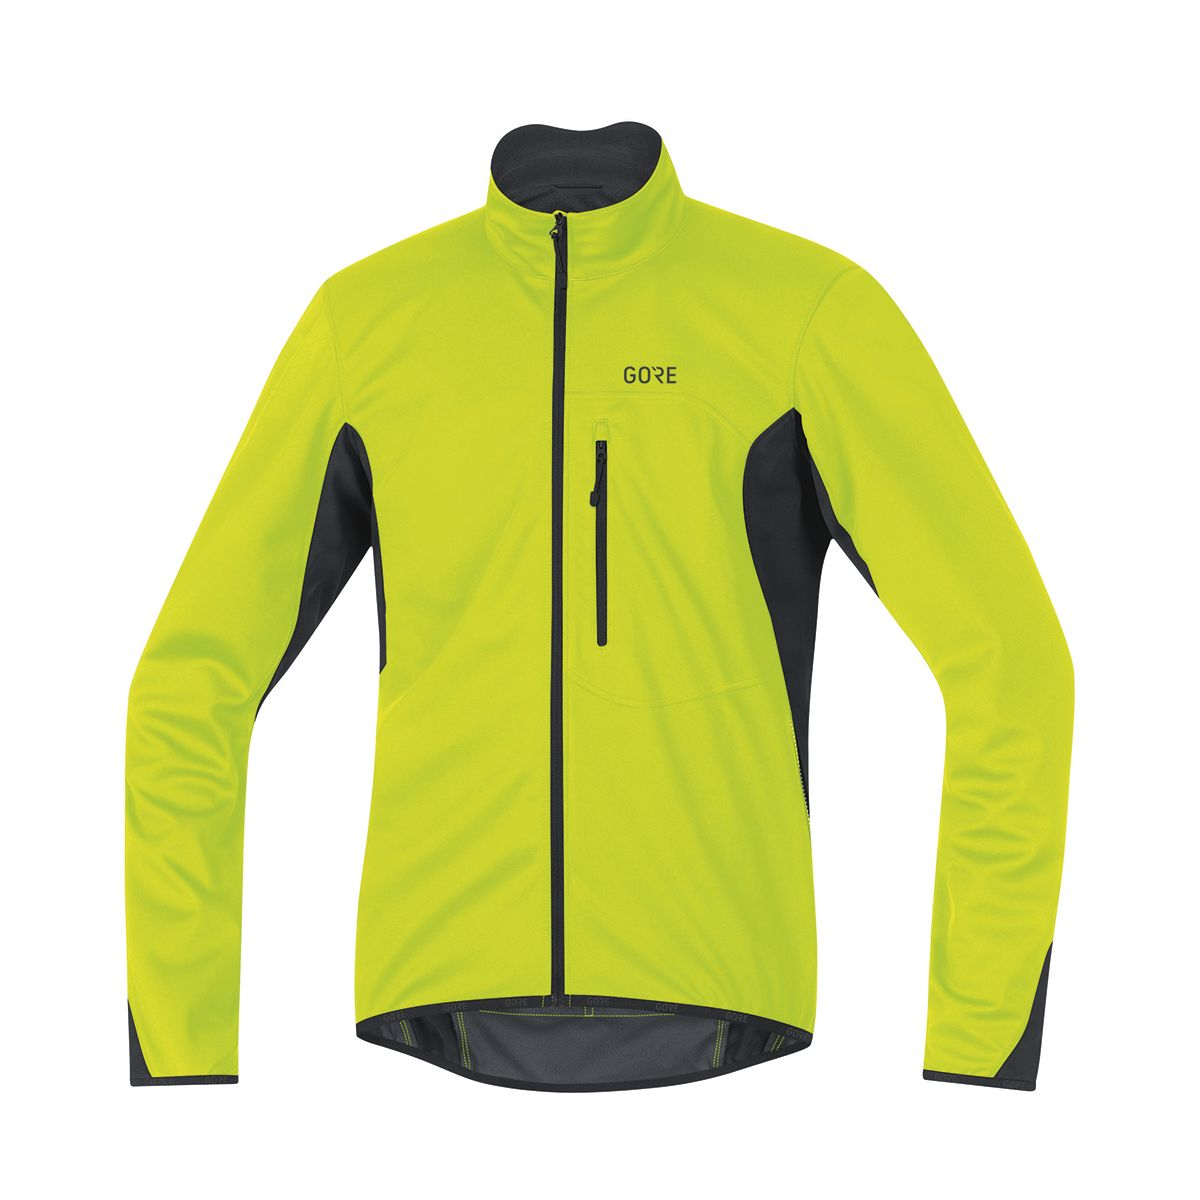 GORE WEAR C3 GORE WINDSTOPPER THERMO JACKET for men C3 GORE WINDSTOPPER THERMO JACKET for men   Jakker